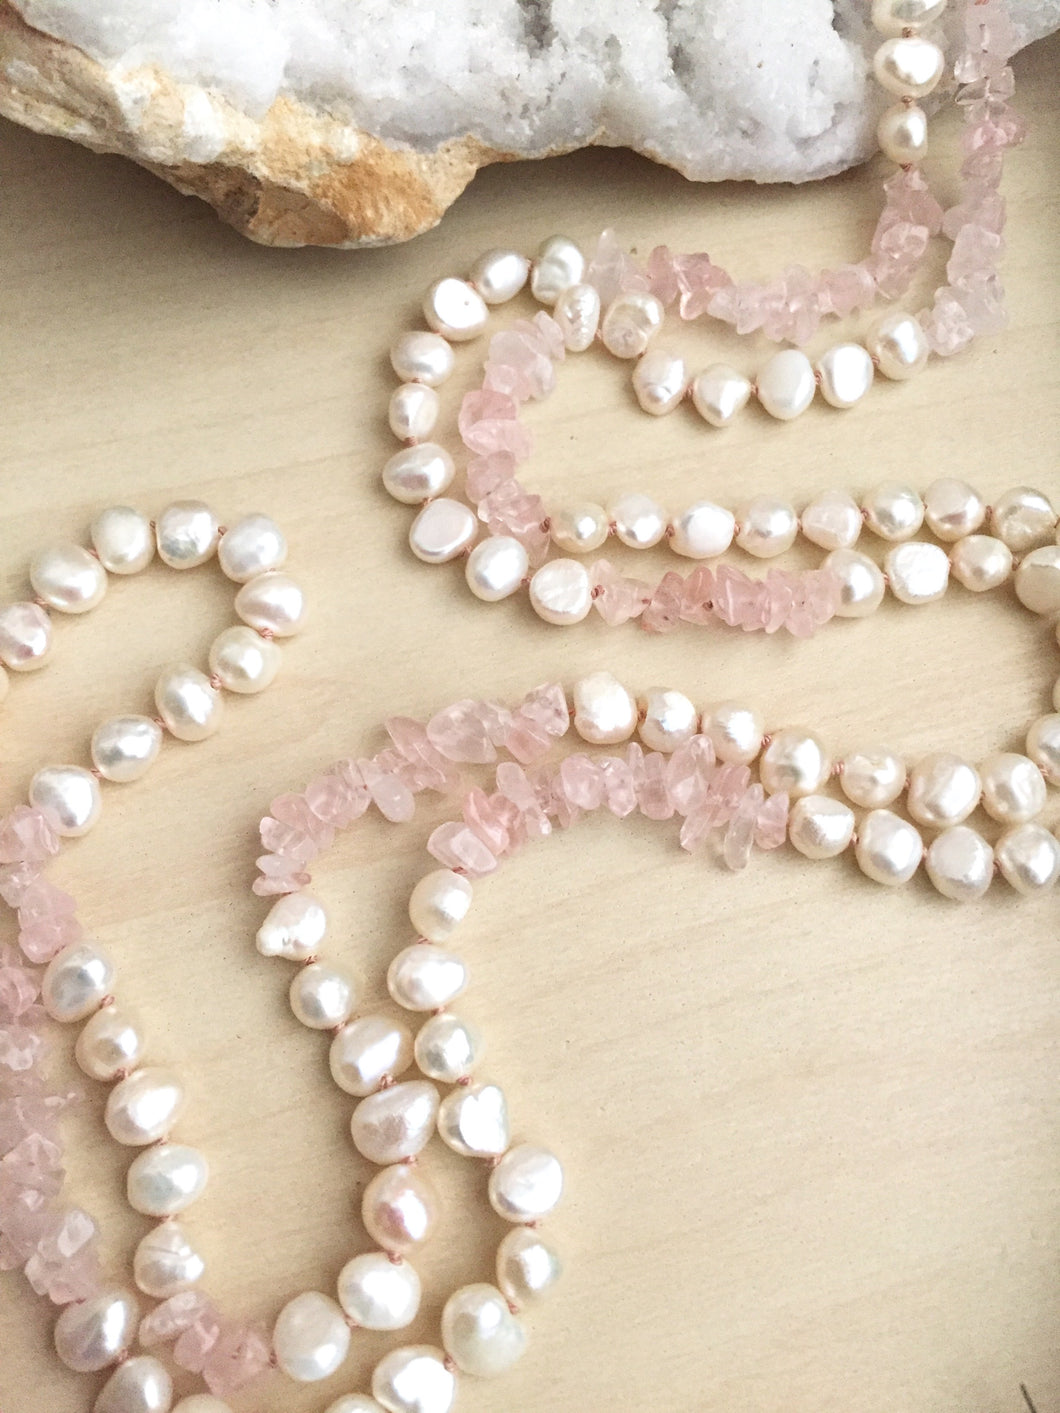 White freshwater pearls and rose quartz chips hand knotted on pink silk